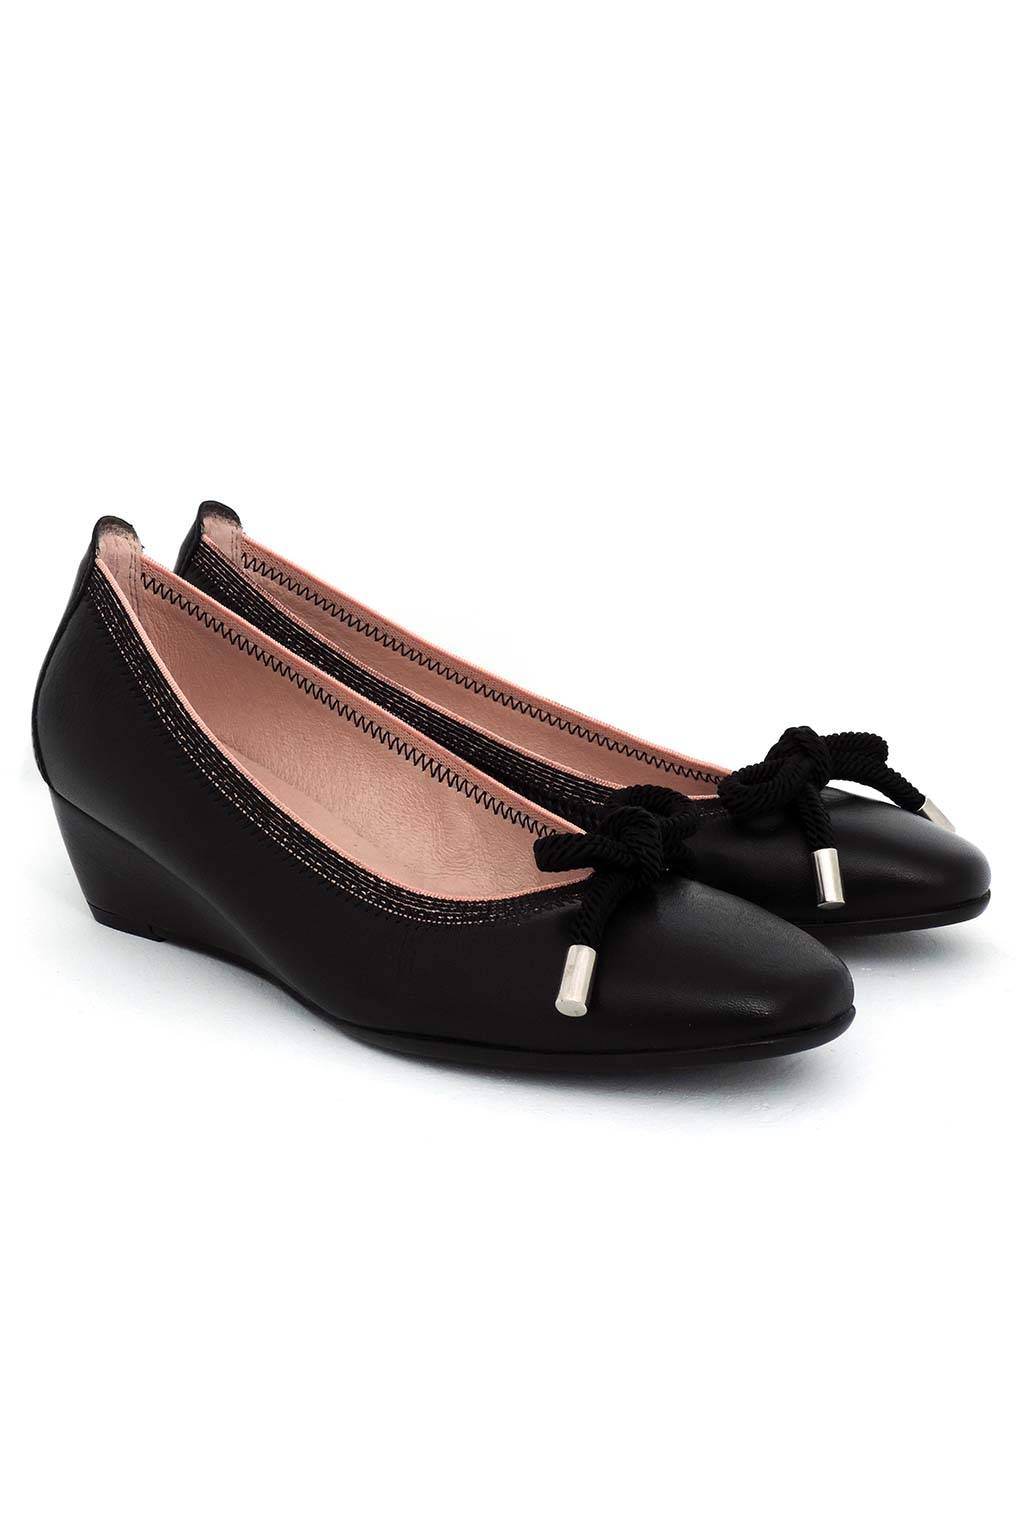 Hispanitas HV51234 Black